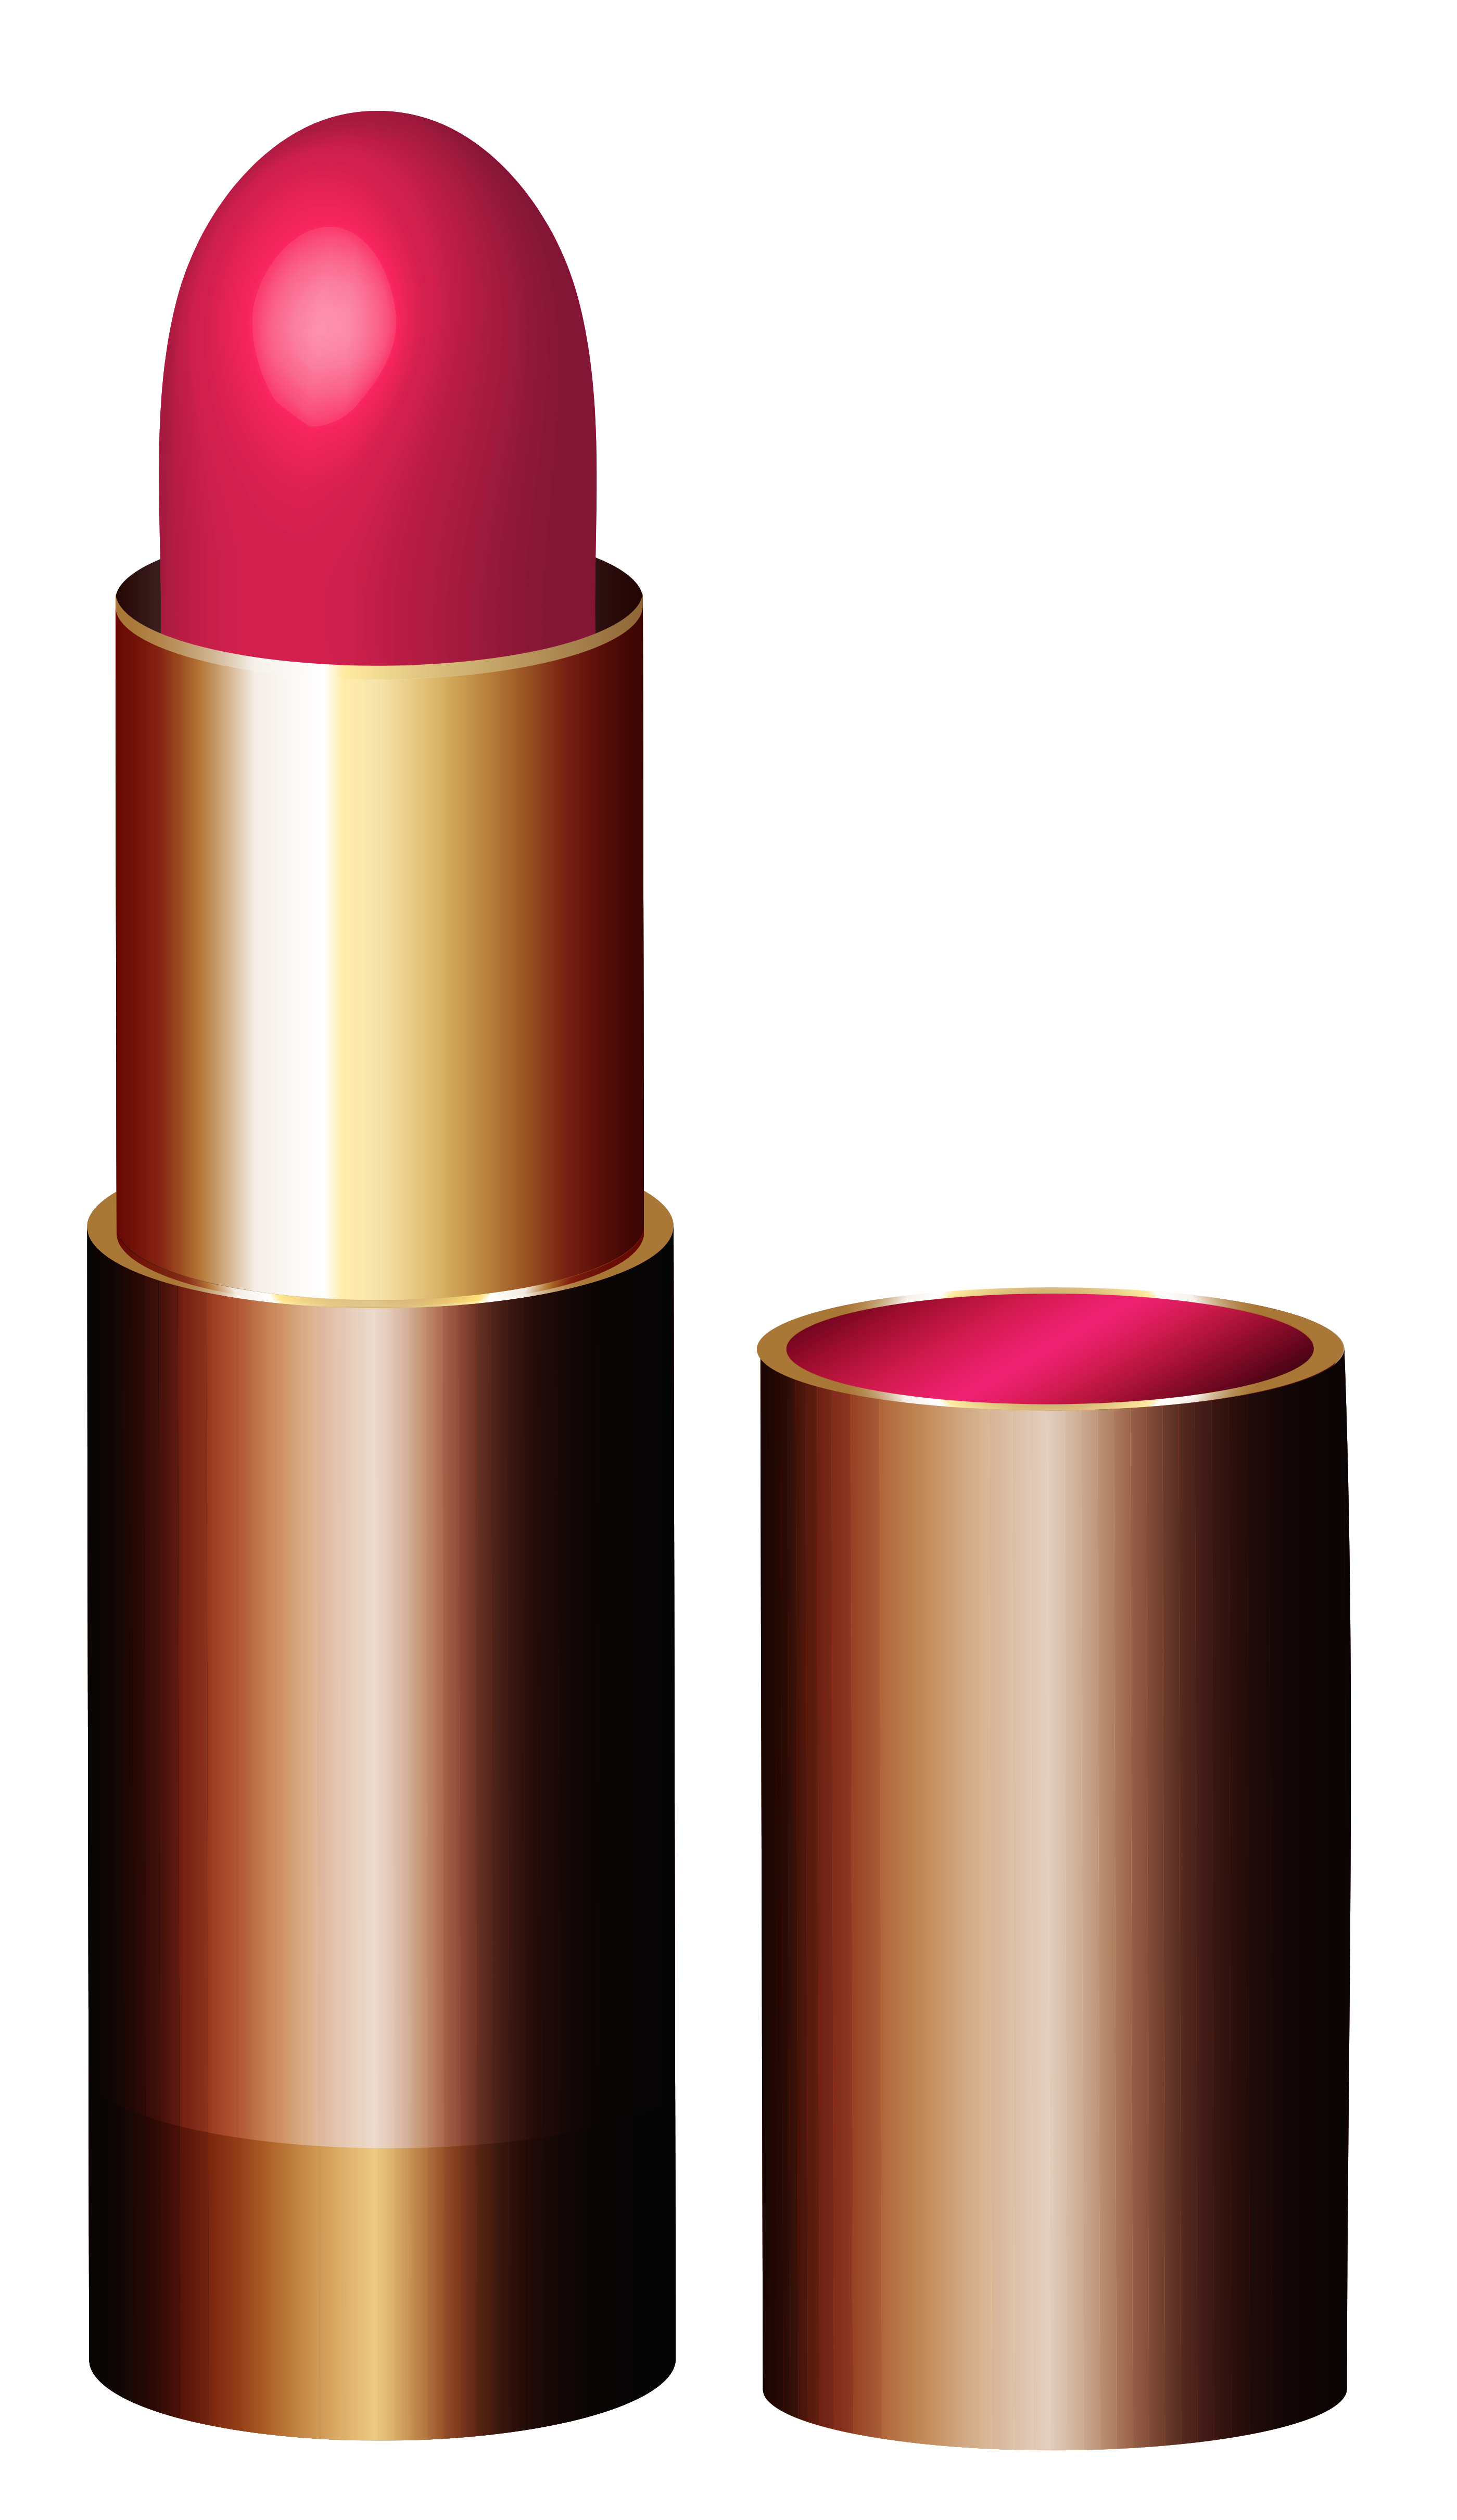 Lipstick clipart png. Pink gallery yopriceville high